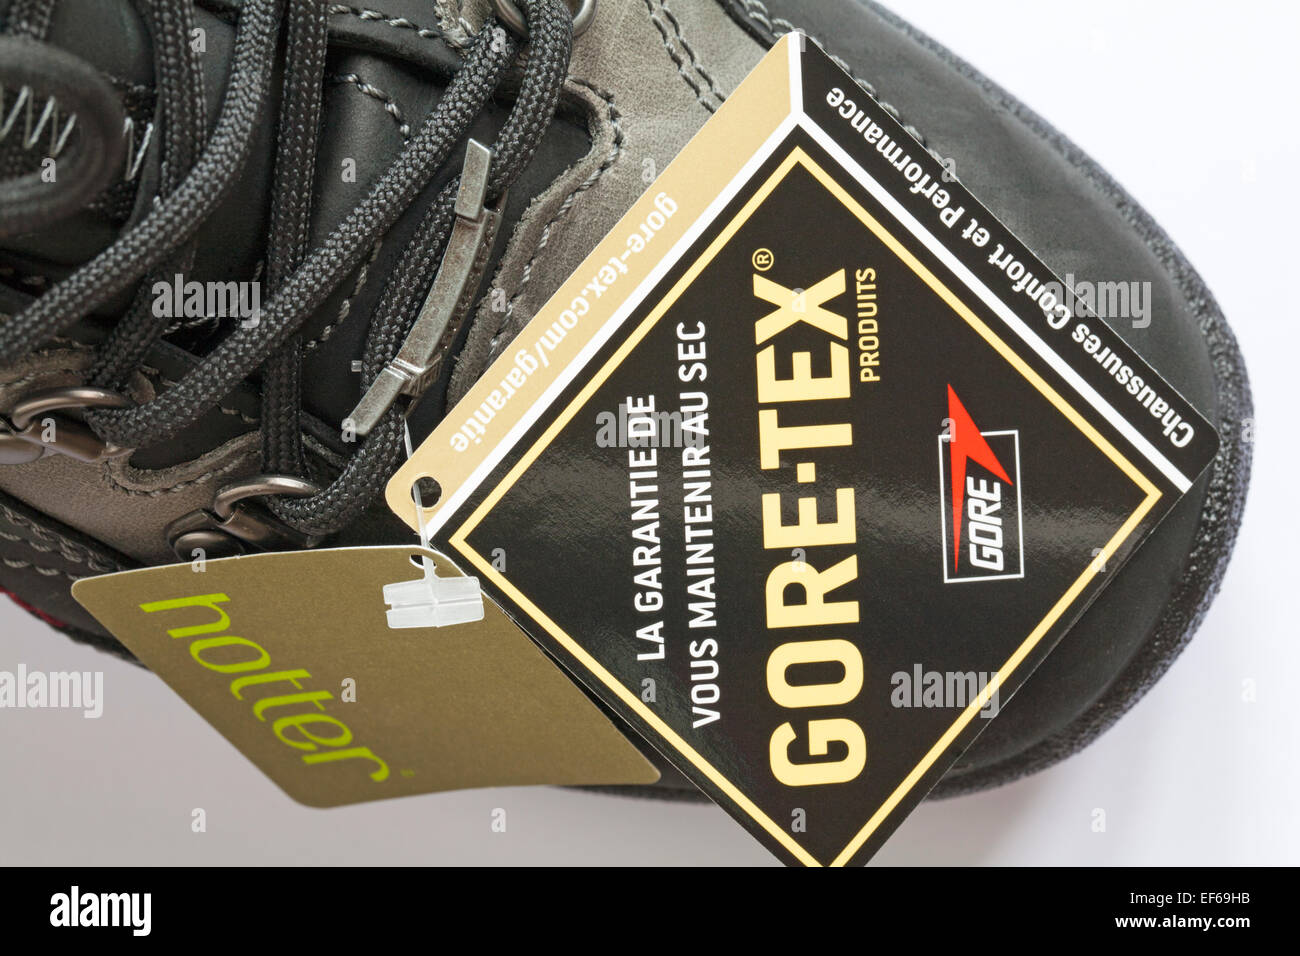 dc3e3d1520f labels on Hotter Gore-tex boots guaranteed to keep you dry Stock ...